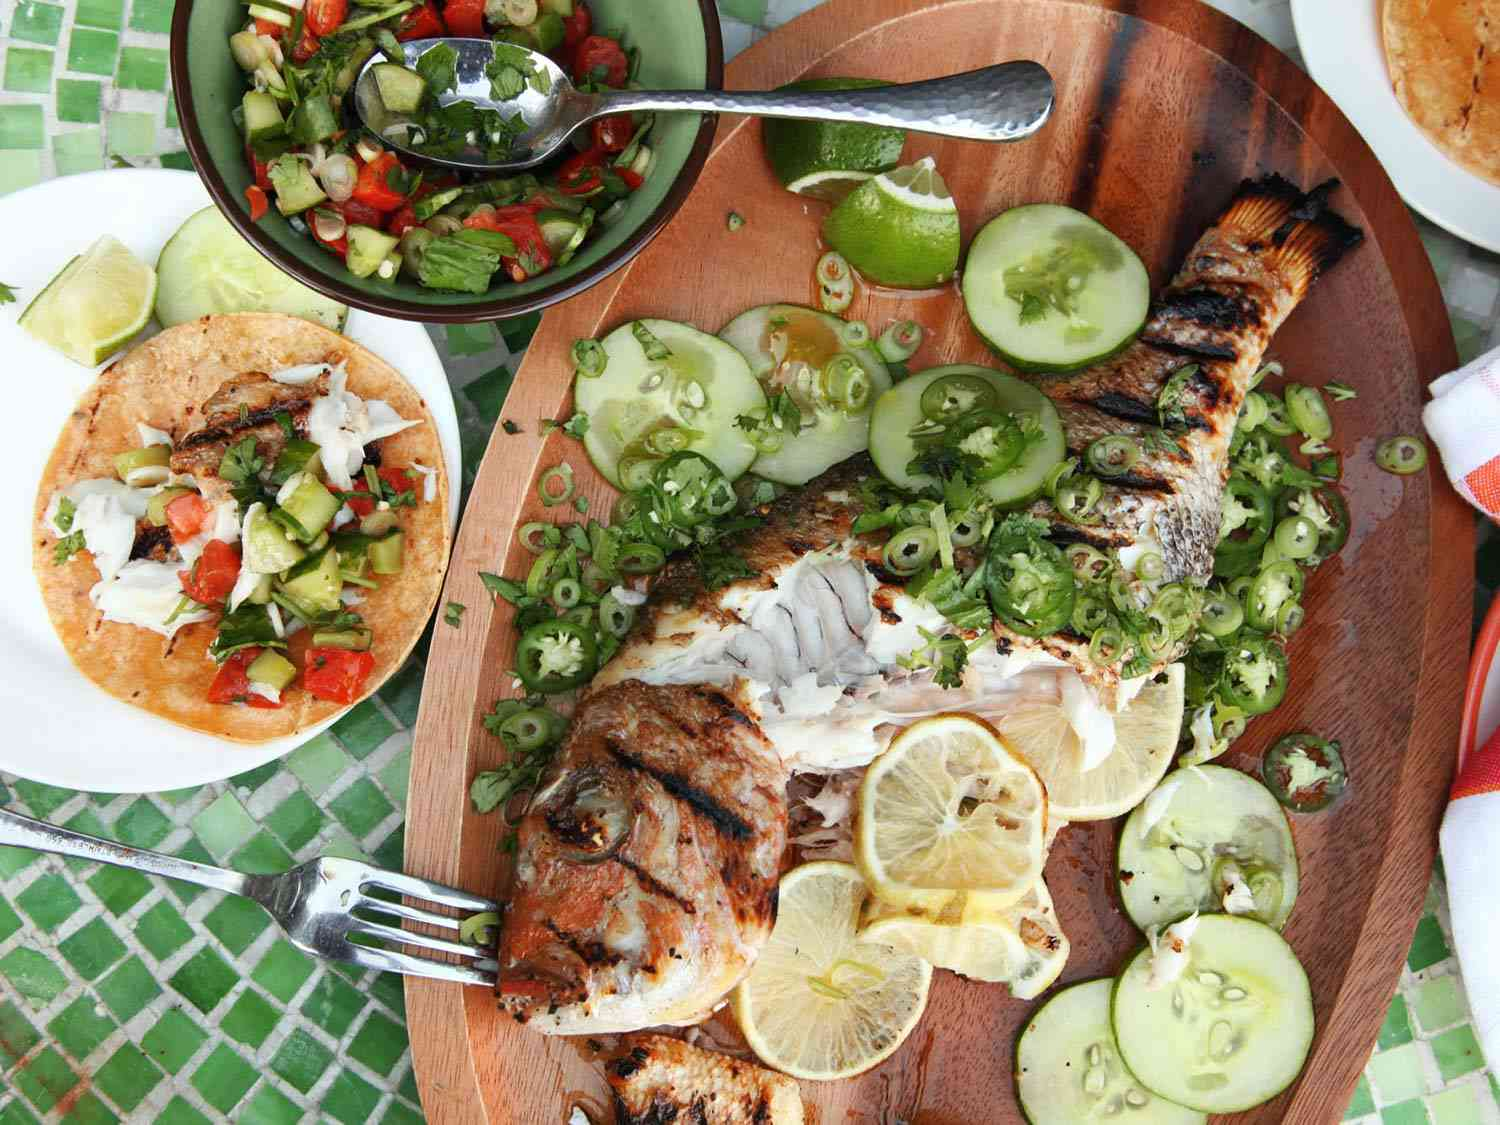 Grilled whole fish on a platter with peppers, cucumber slices, and lemon slices, with fish tacos and accoutrements on plates nearby